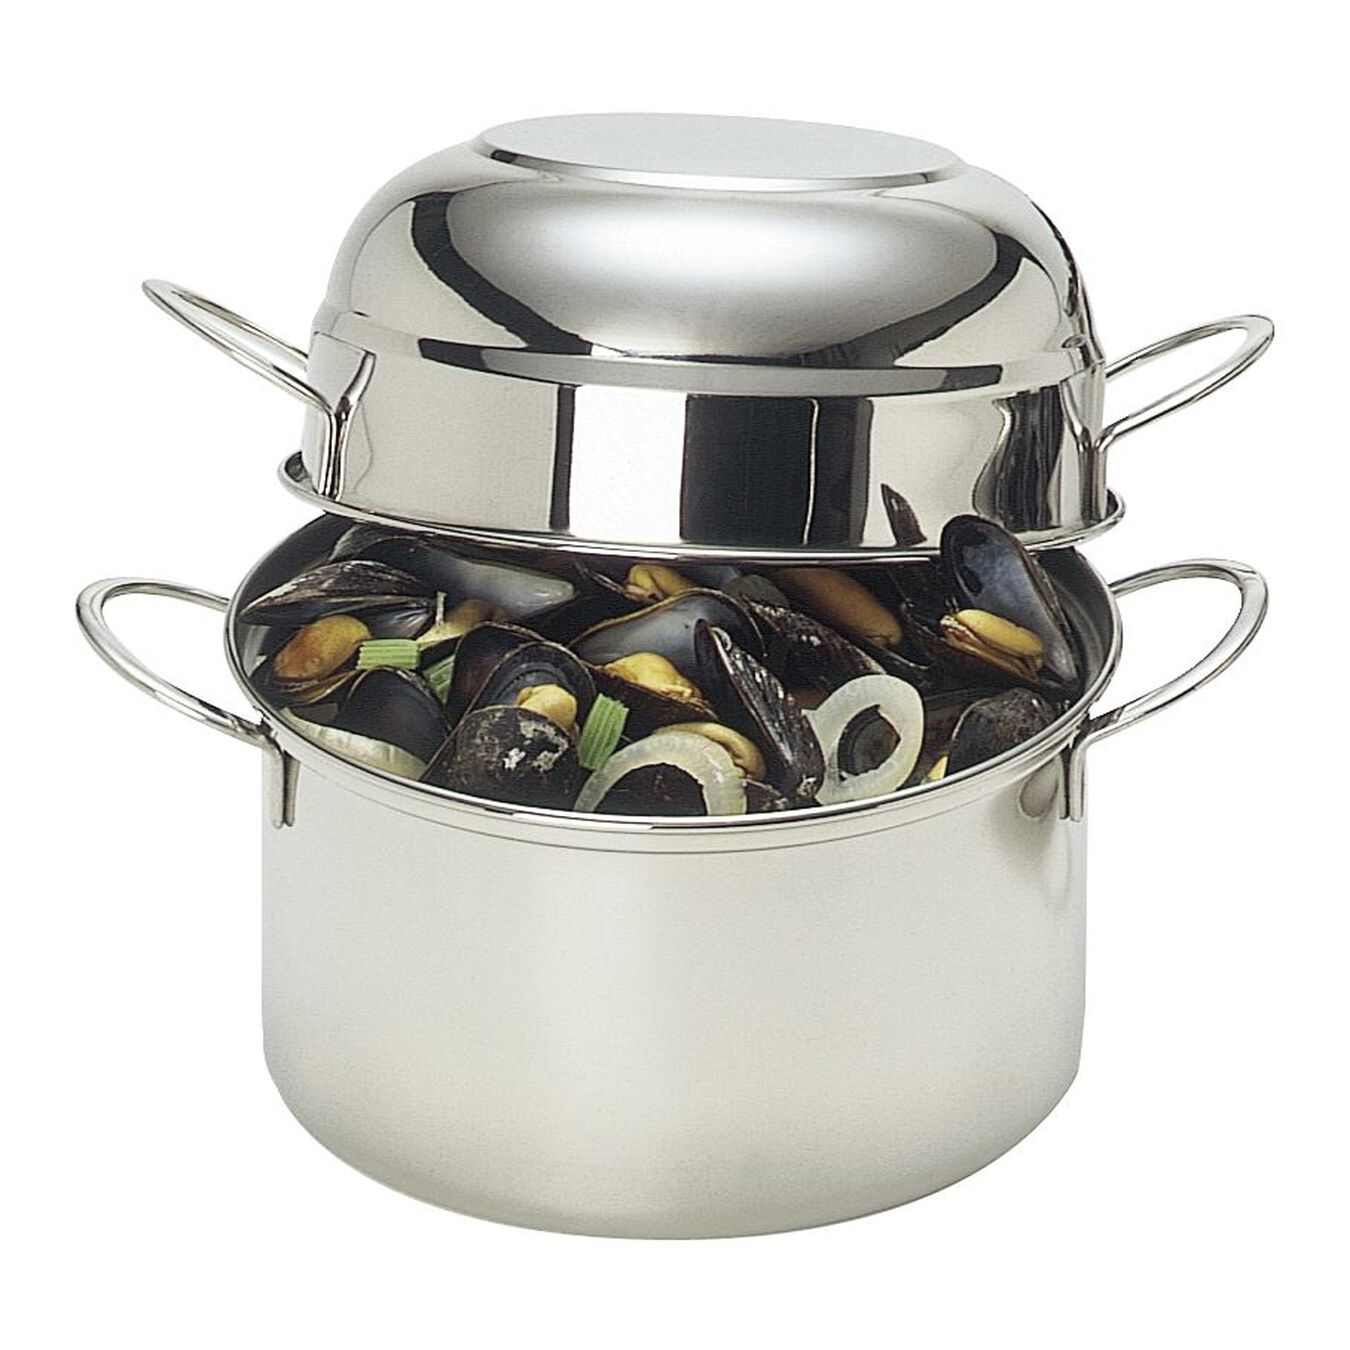 3 l 18/10 Stainless Steel round Moulière, Silver,,large 1